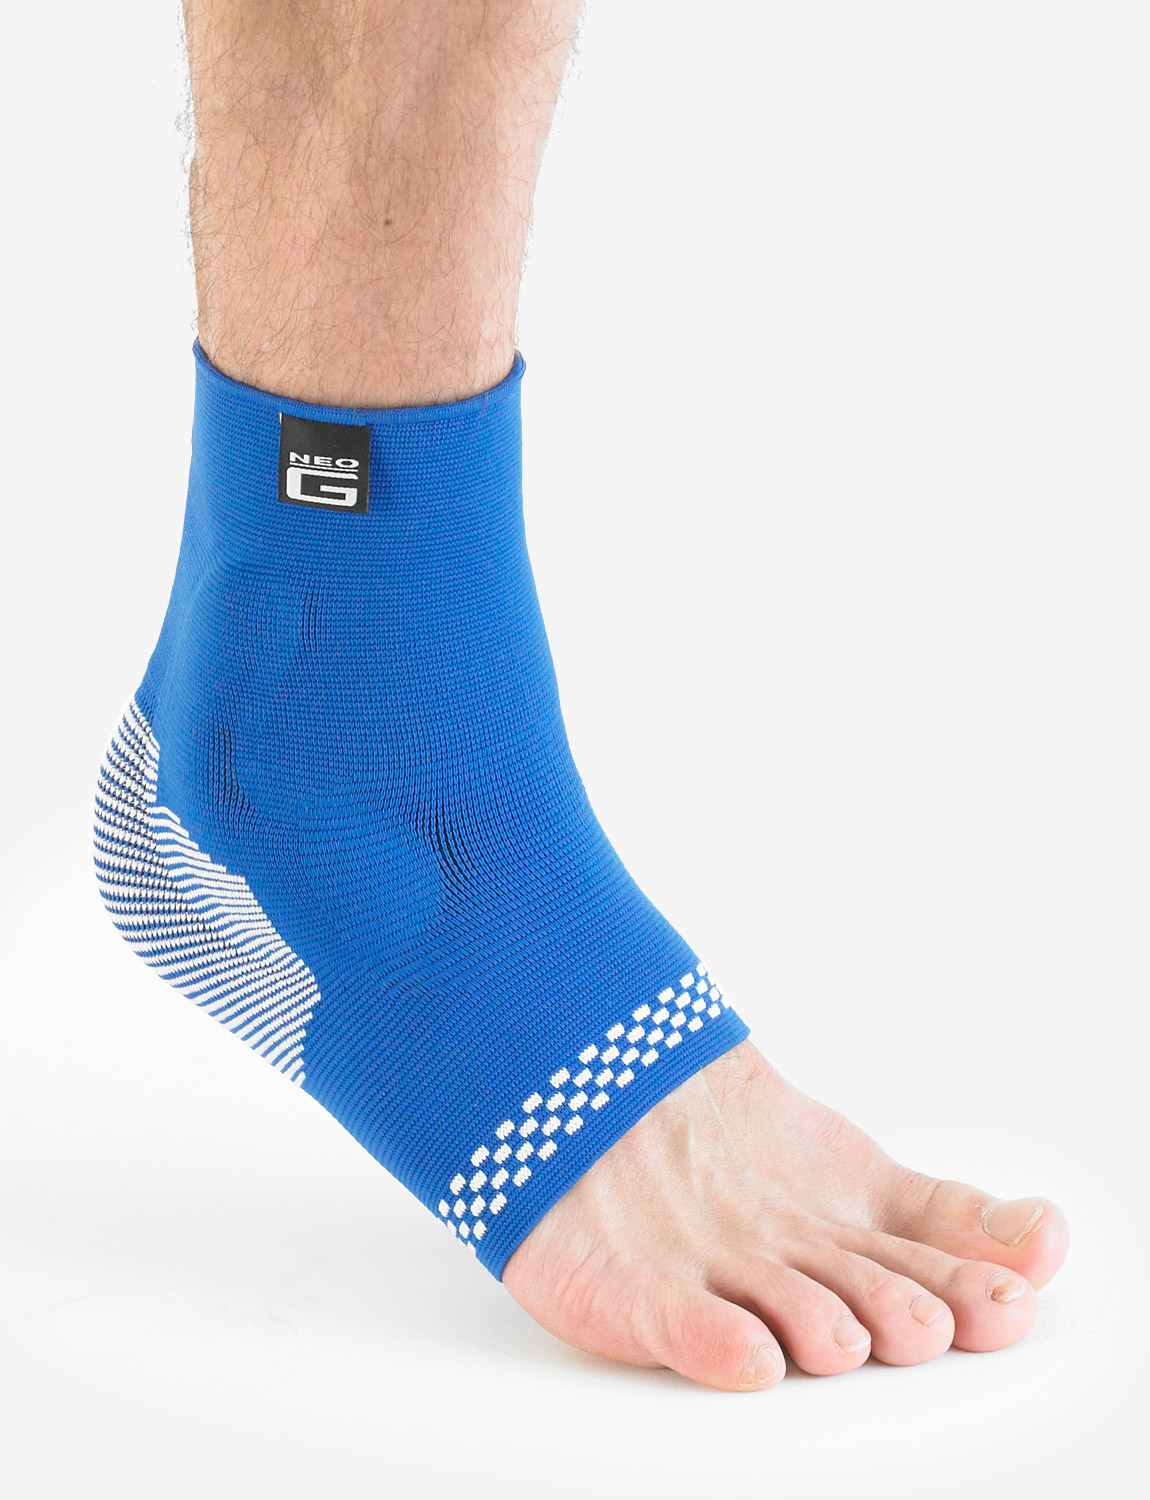 456 - ANKLE SUPPORT WITH SILICONE JOINT CUSHIONS  Support and reduce impact on the ankle joint. Lightweight, breathable and seamless knit fabric provides Multi Zone Compression (MZC) for optimum fit, comfort and durability. The product fits the Left or Right ankle and is Unisex. Helps strains, sprains and instability. Helps support injured, weak or arthritic ankles. Ideal for sports training and rehabilitation of sporting and occupational injuries whilst also helping reduce the likelihood of re-injury